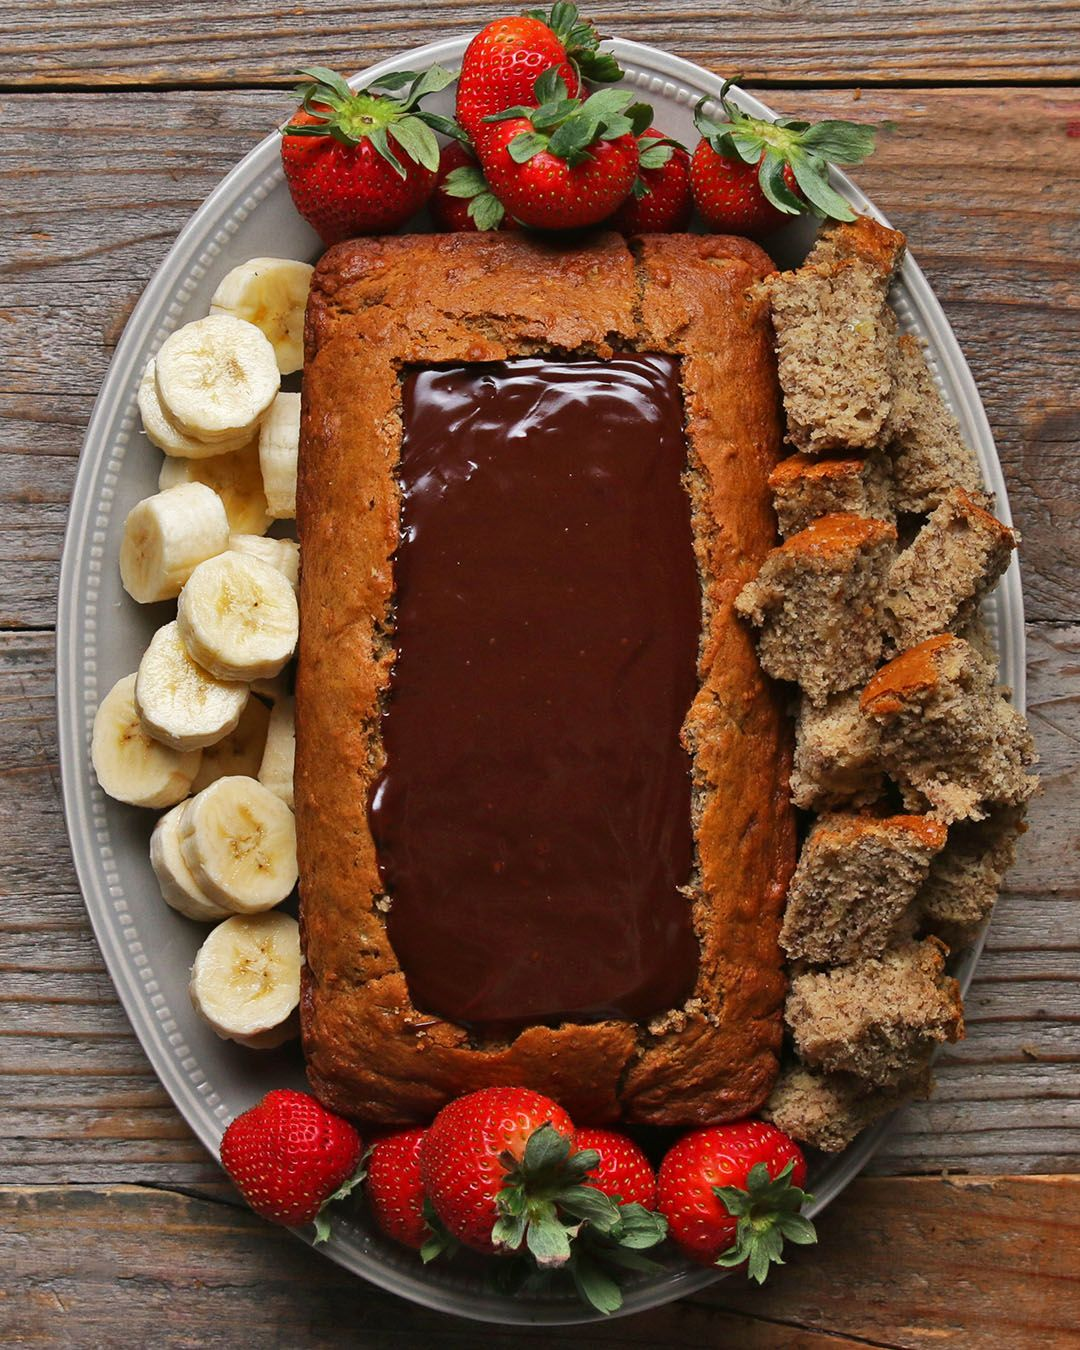 Deutsche Kuche Bread Chocolate Fondue Banana Bread Boat